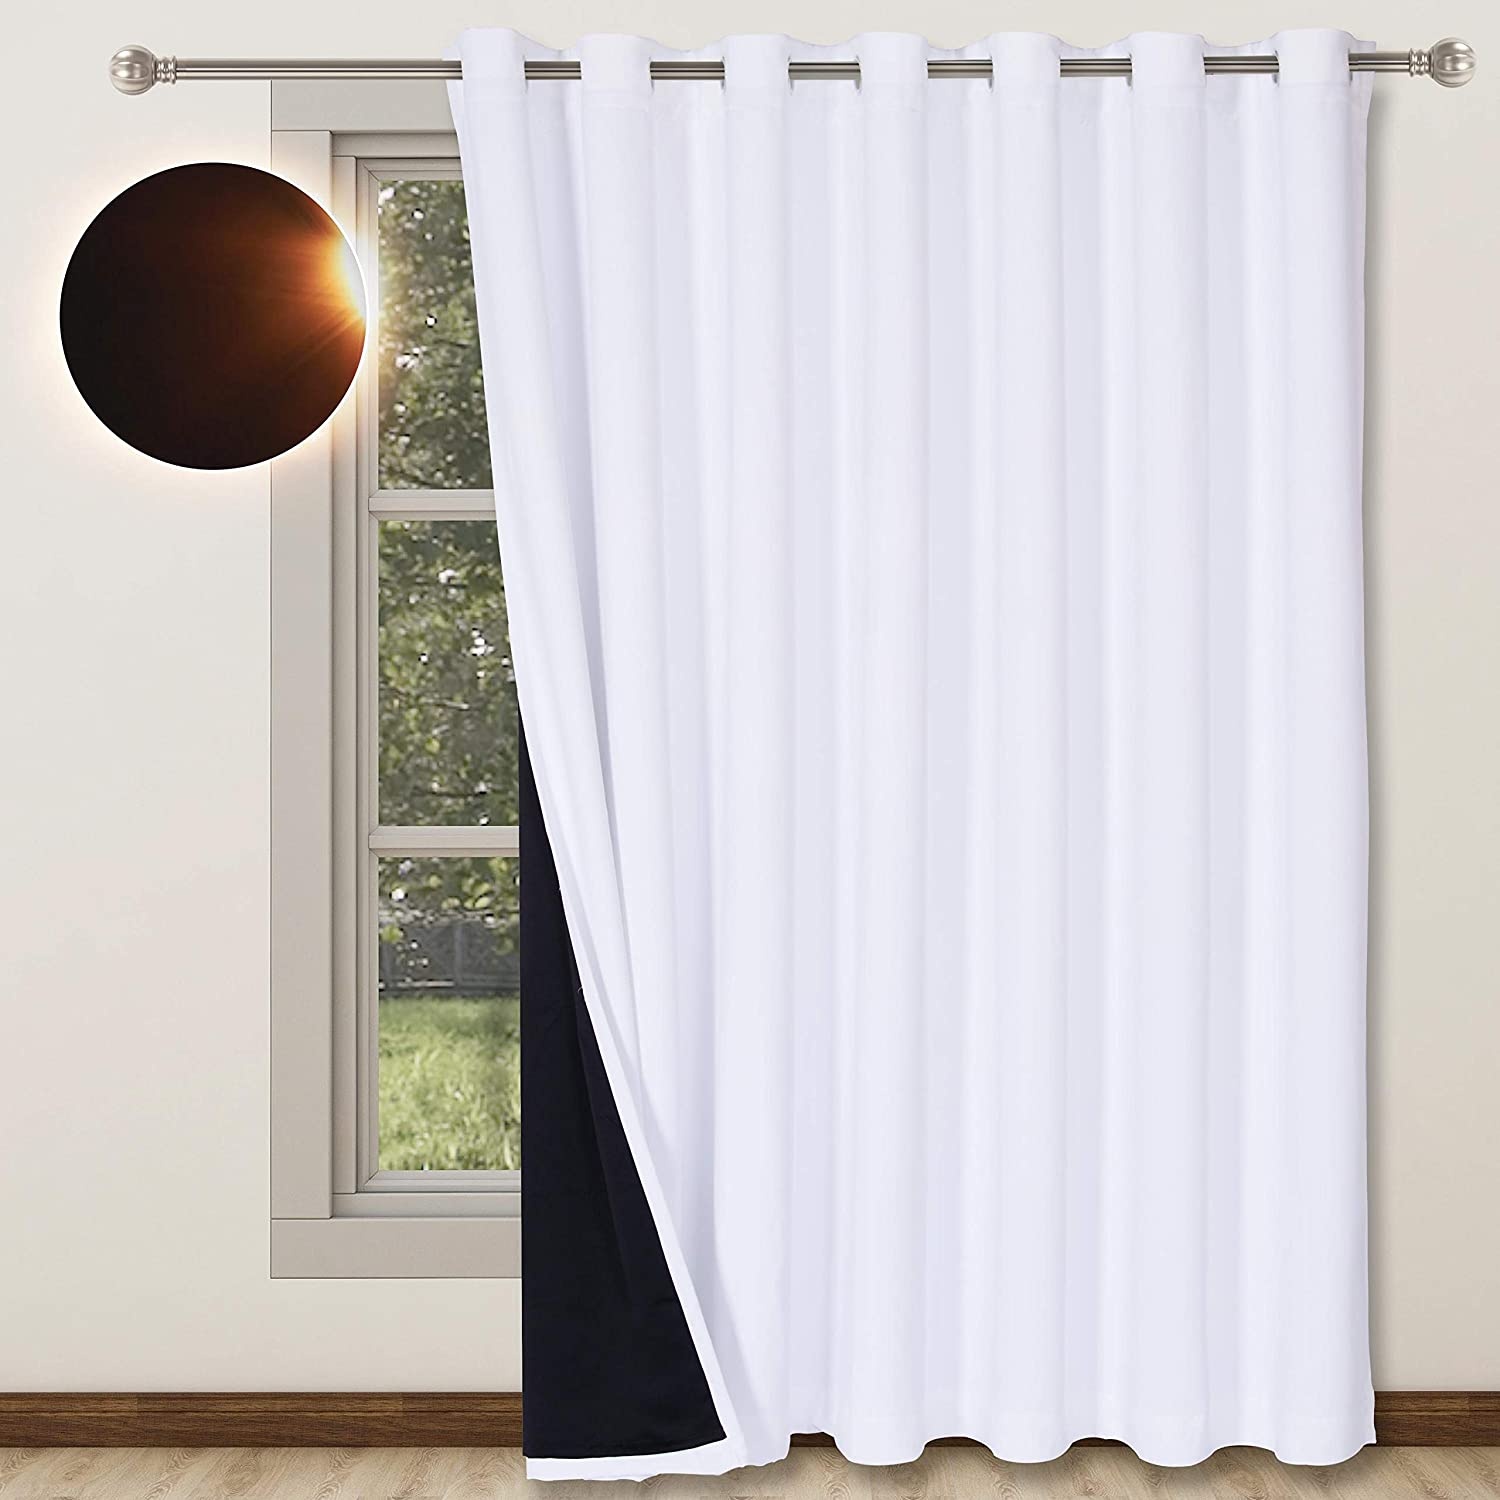 WONTEX Branded goods 100% List price Blackout Curtains for Patio 100 Living Room Bedroom